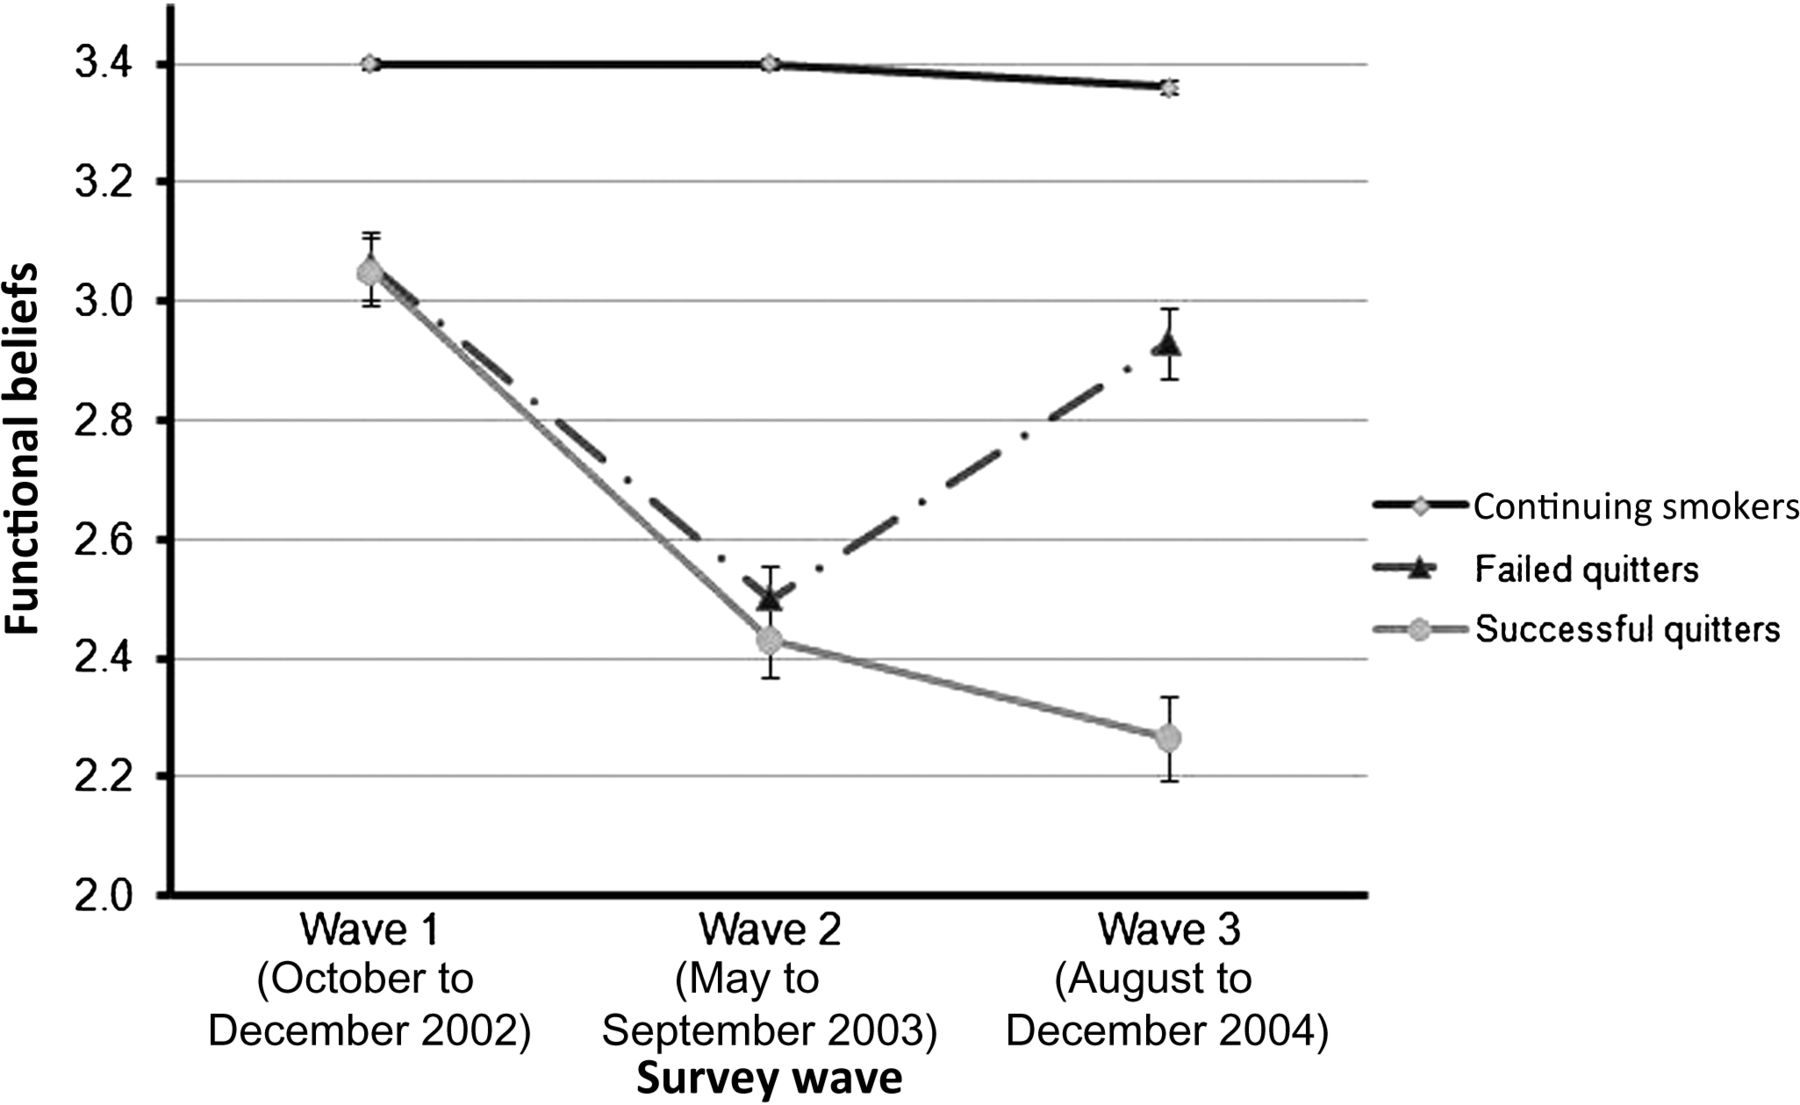 Patterns Of Cognitive Dissonance Reducing Beliefs Among Smokers A